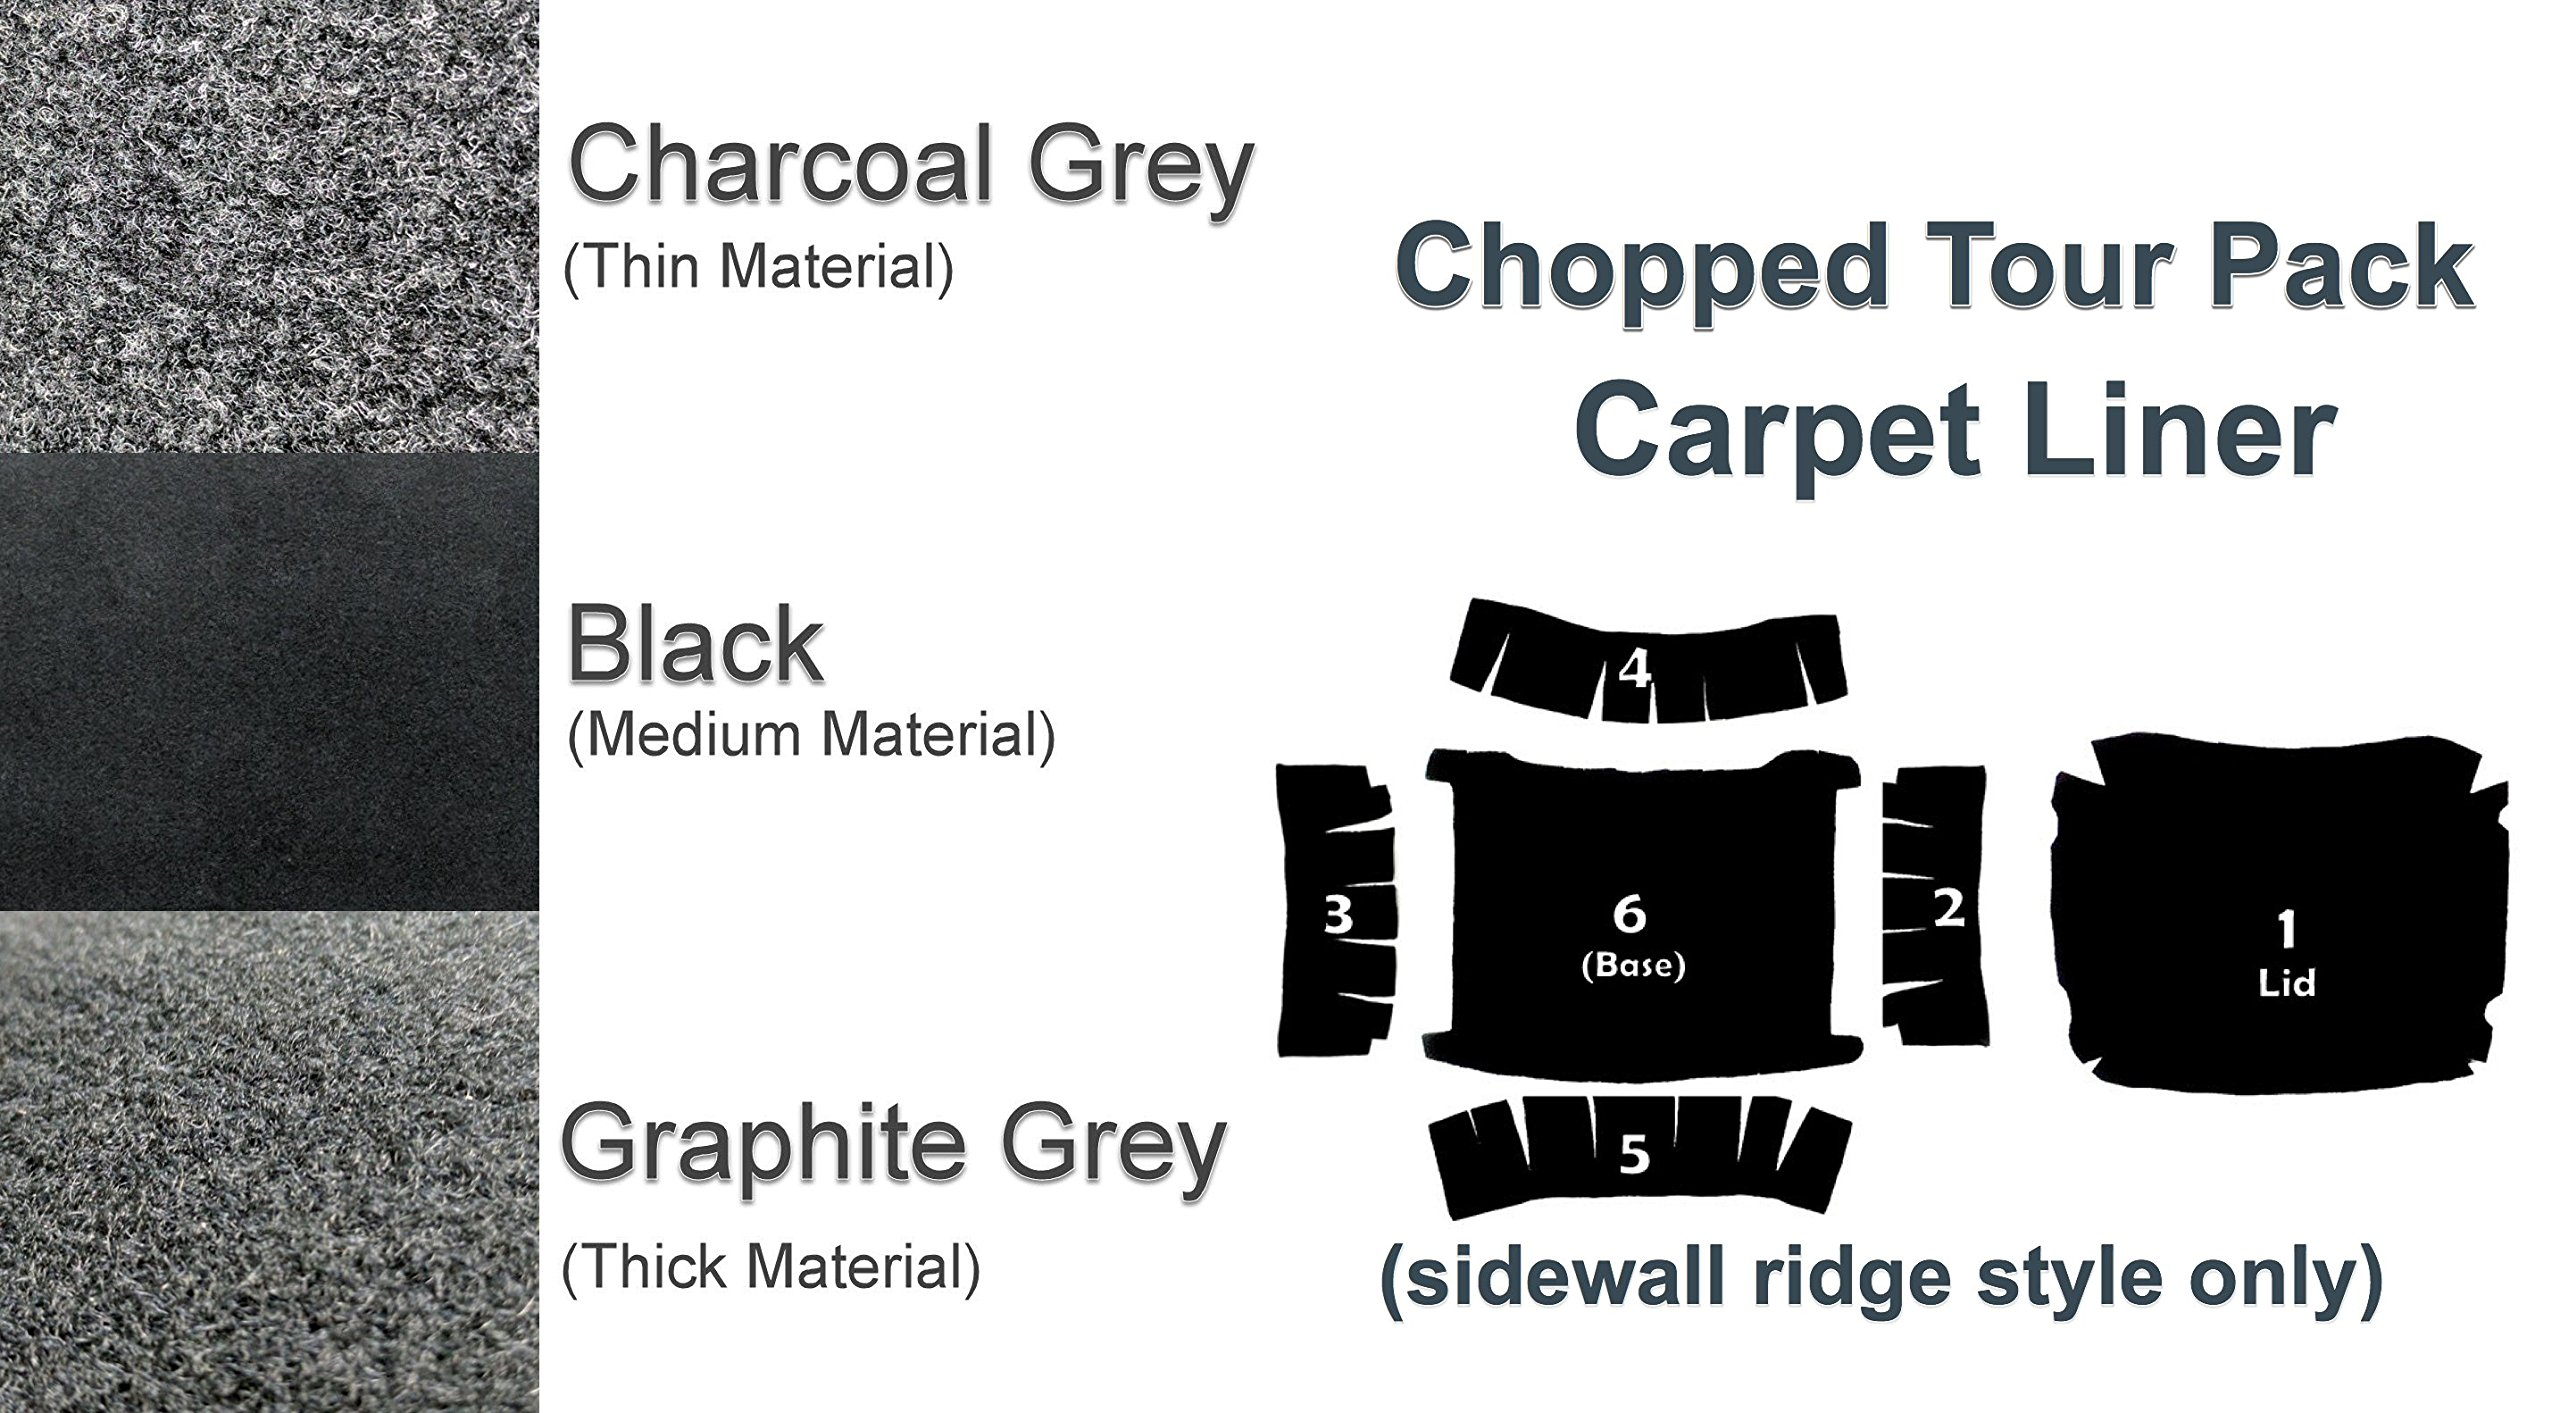 Chopped Tour Pak Pack Carpet Liner for 1994-2013 Harley-Davidson Chopped Tour pack w/ Sidewall Ridges (Charcoal)